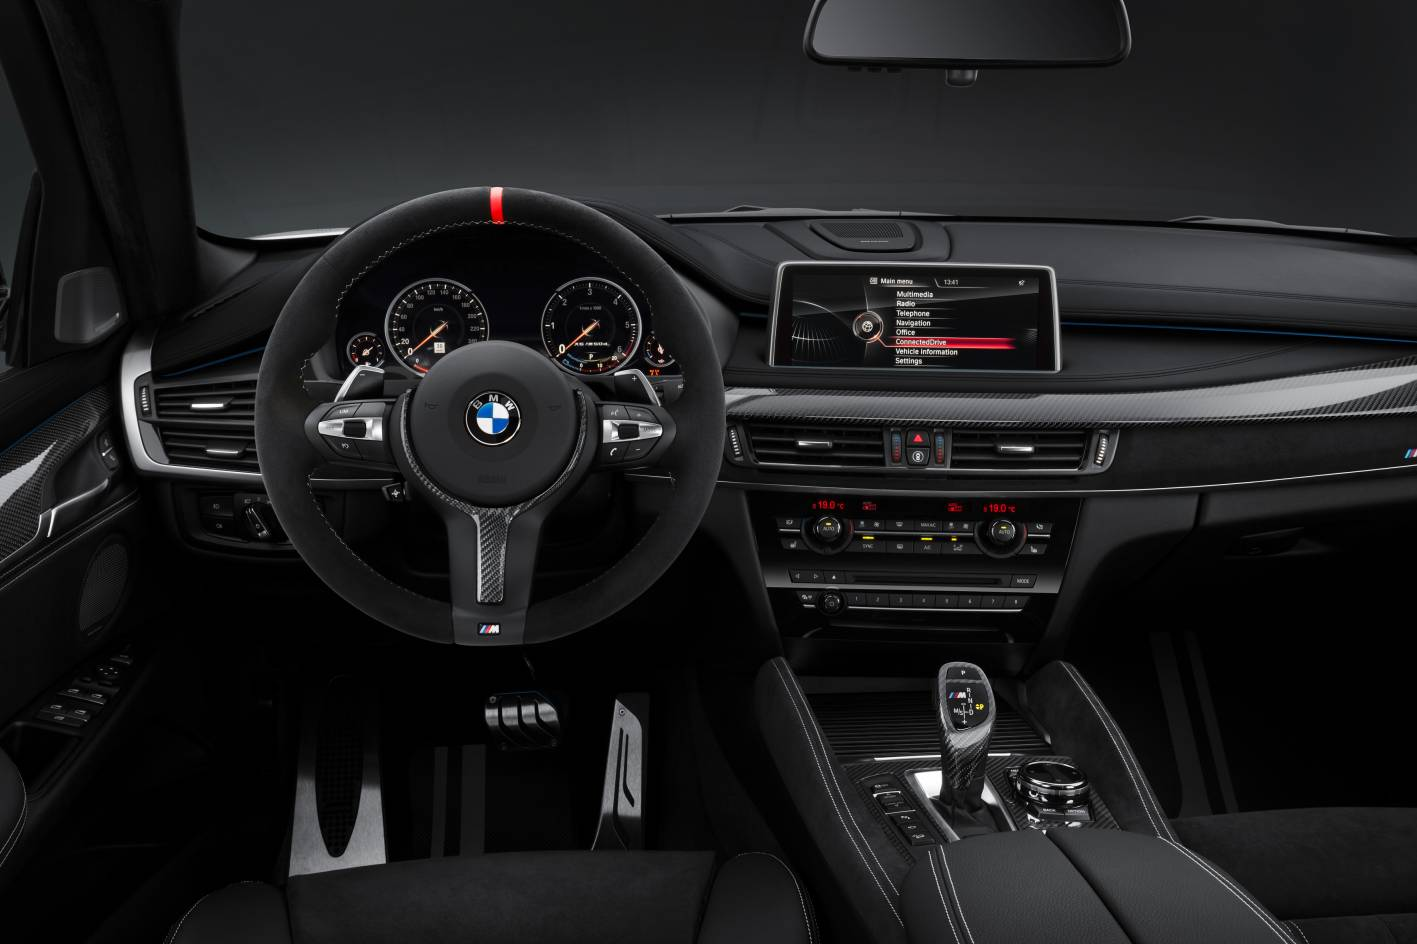 Coupe Series bmw m performance steering wheel 2015 BMW X6 M Performance-steering wheel  